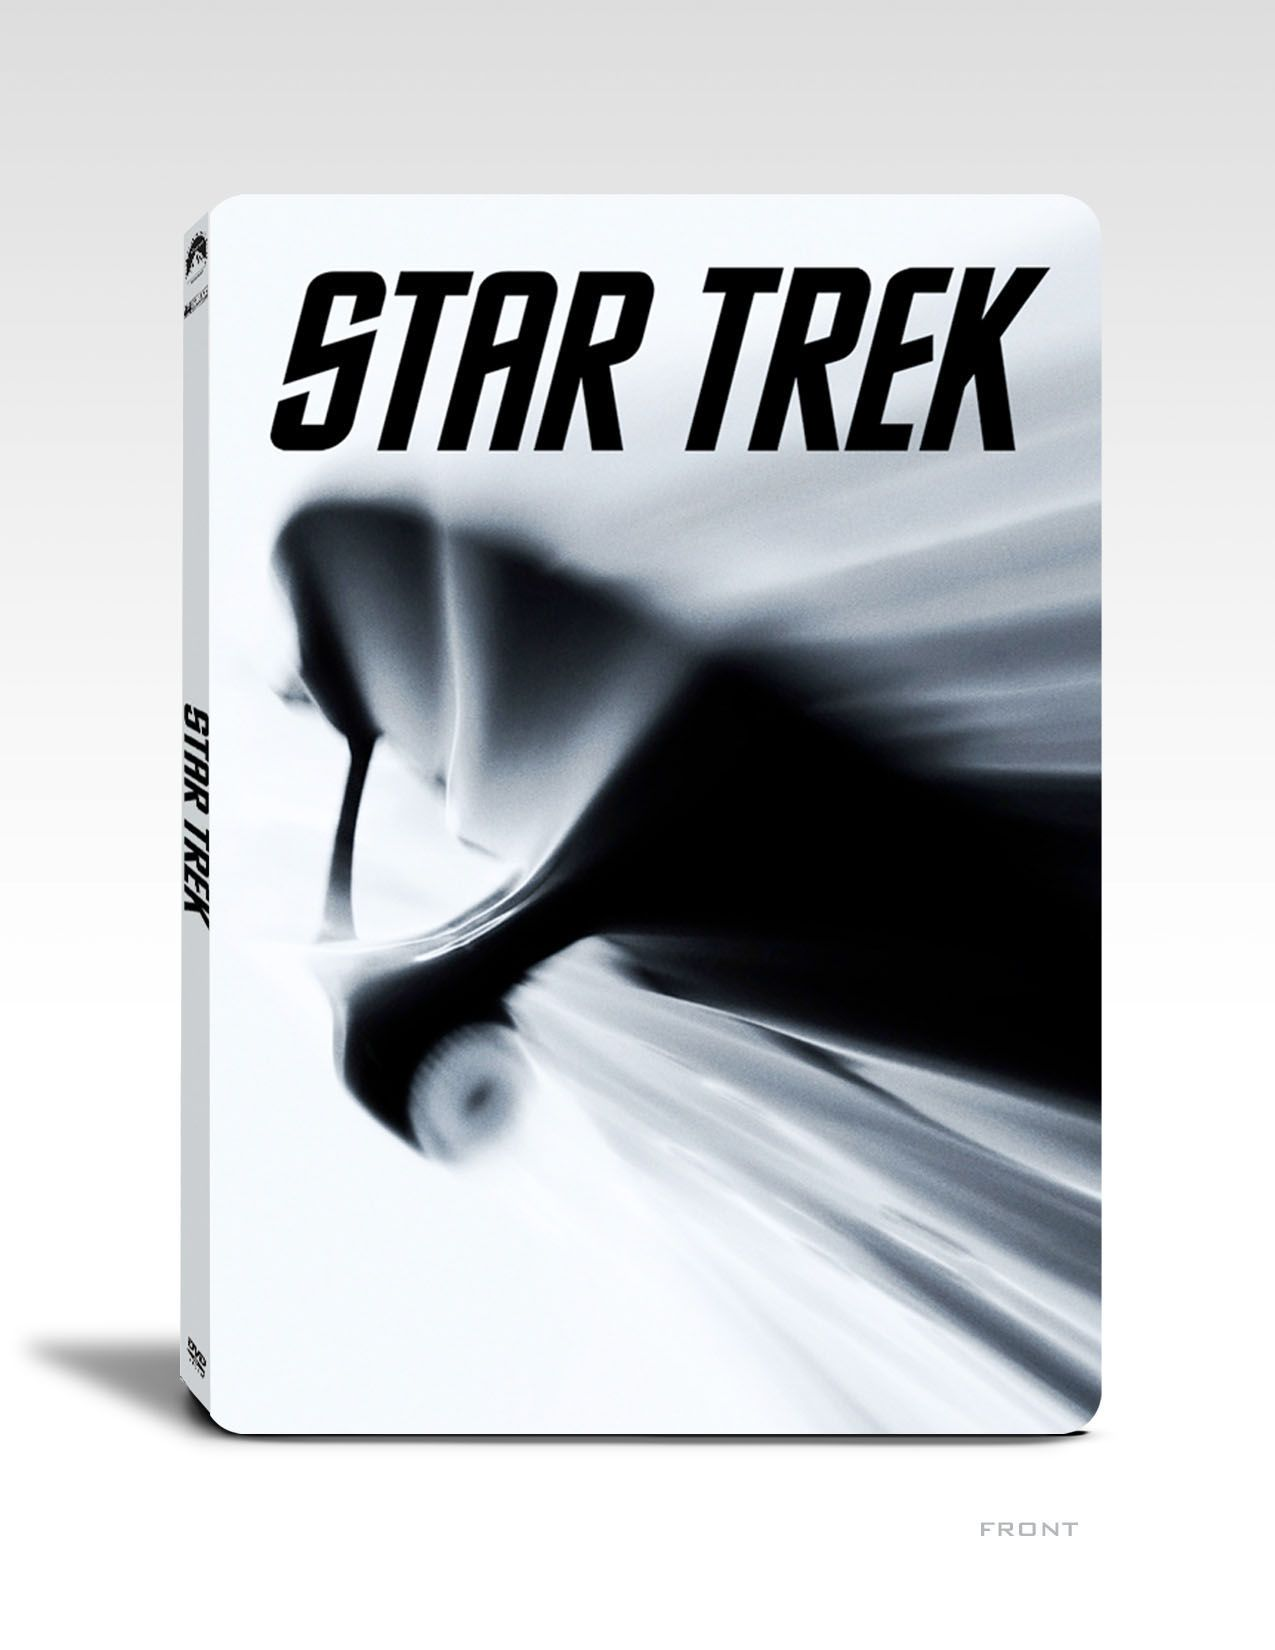 star_trek_dvd_transworld_steelcase_01.jpg